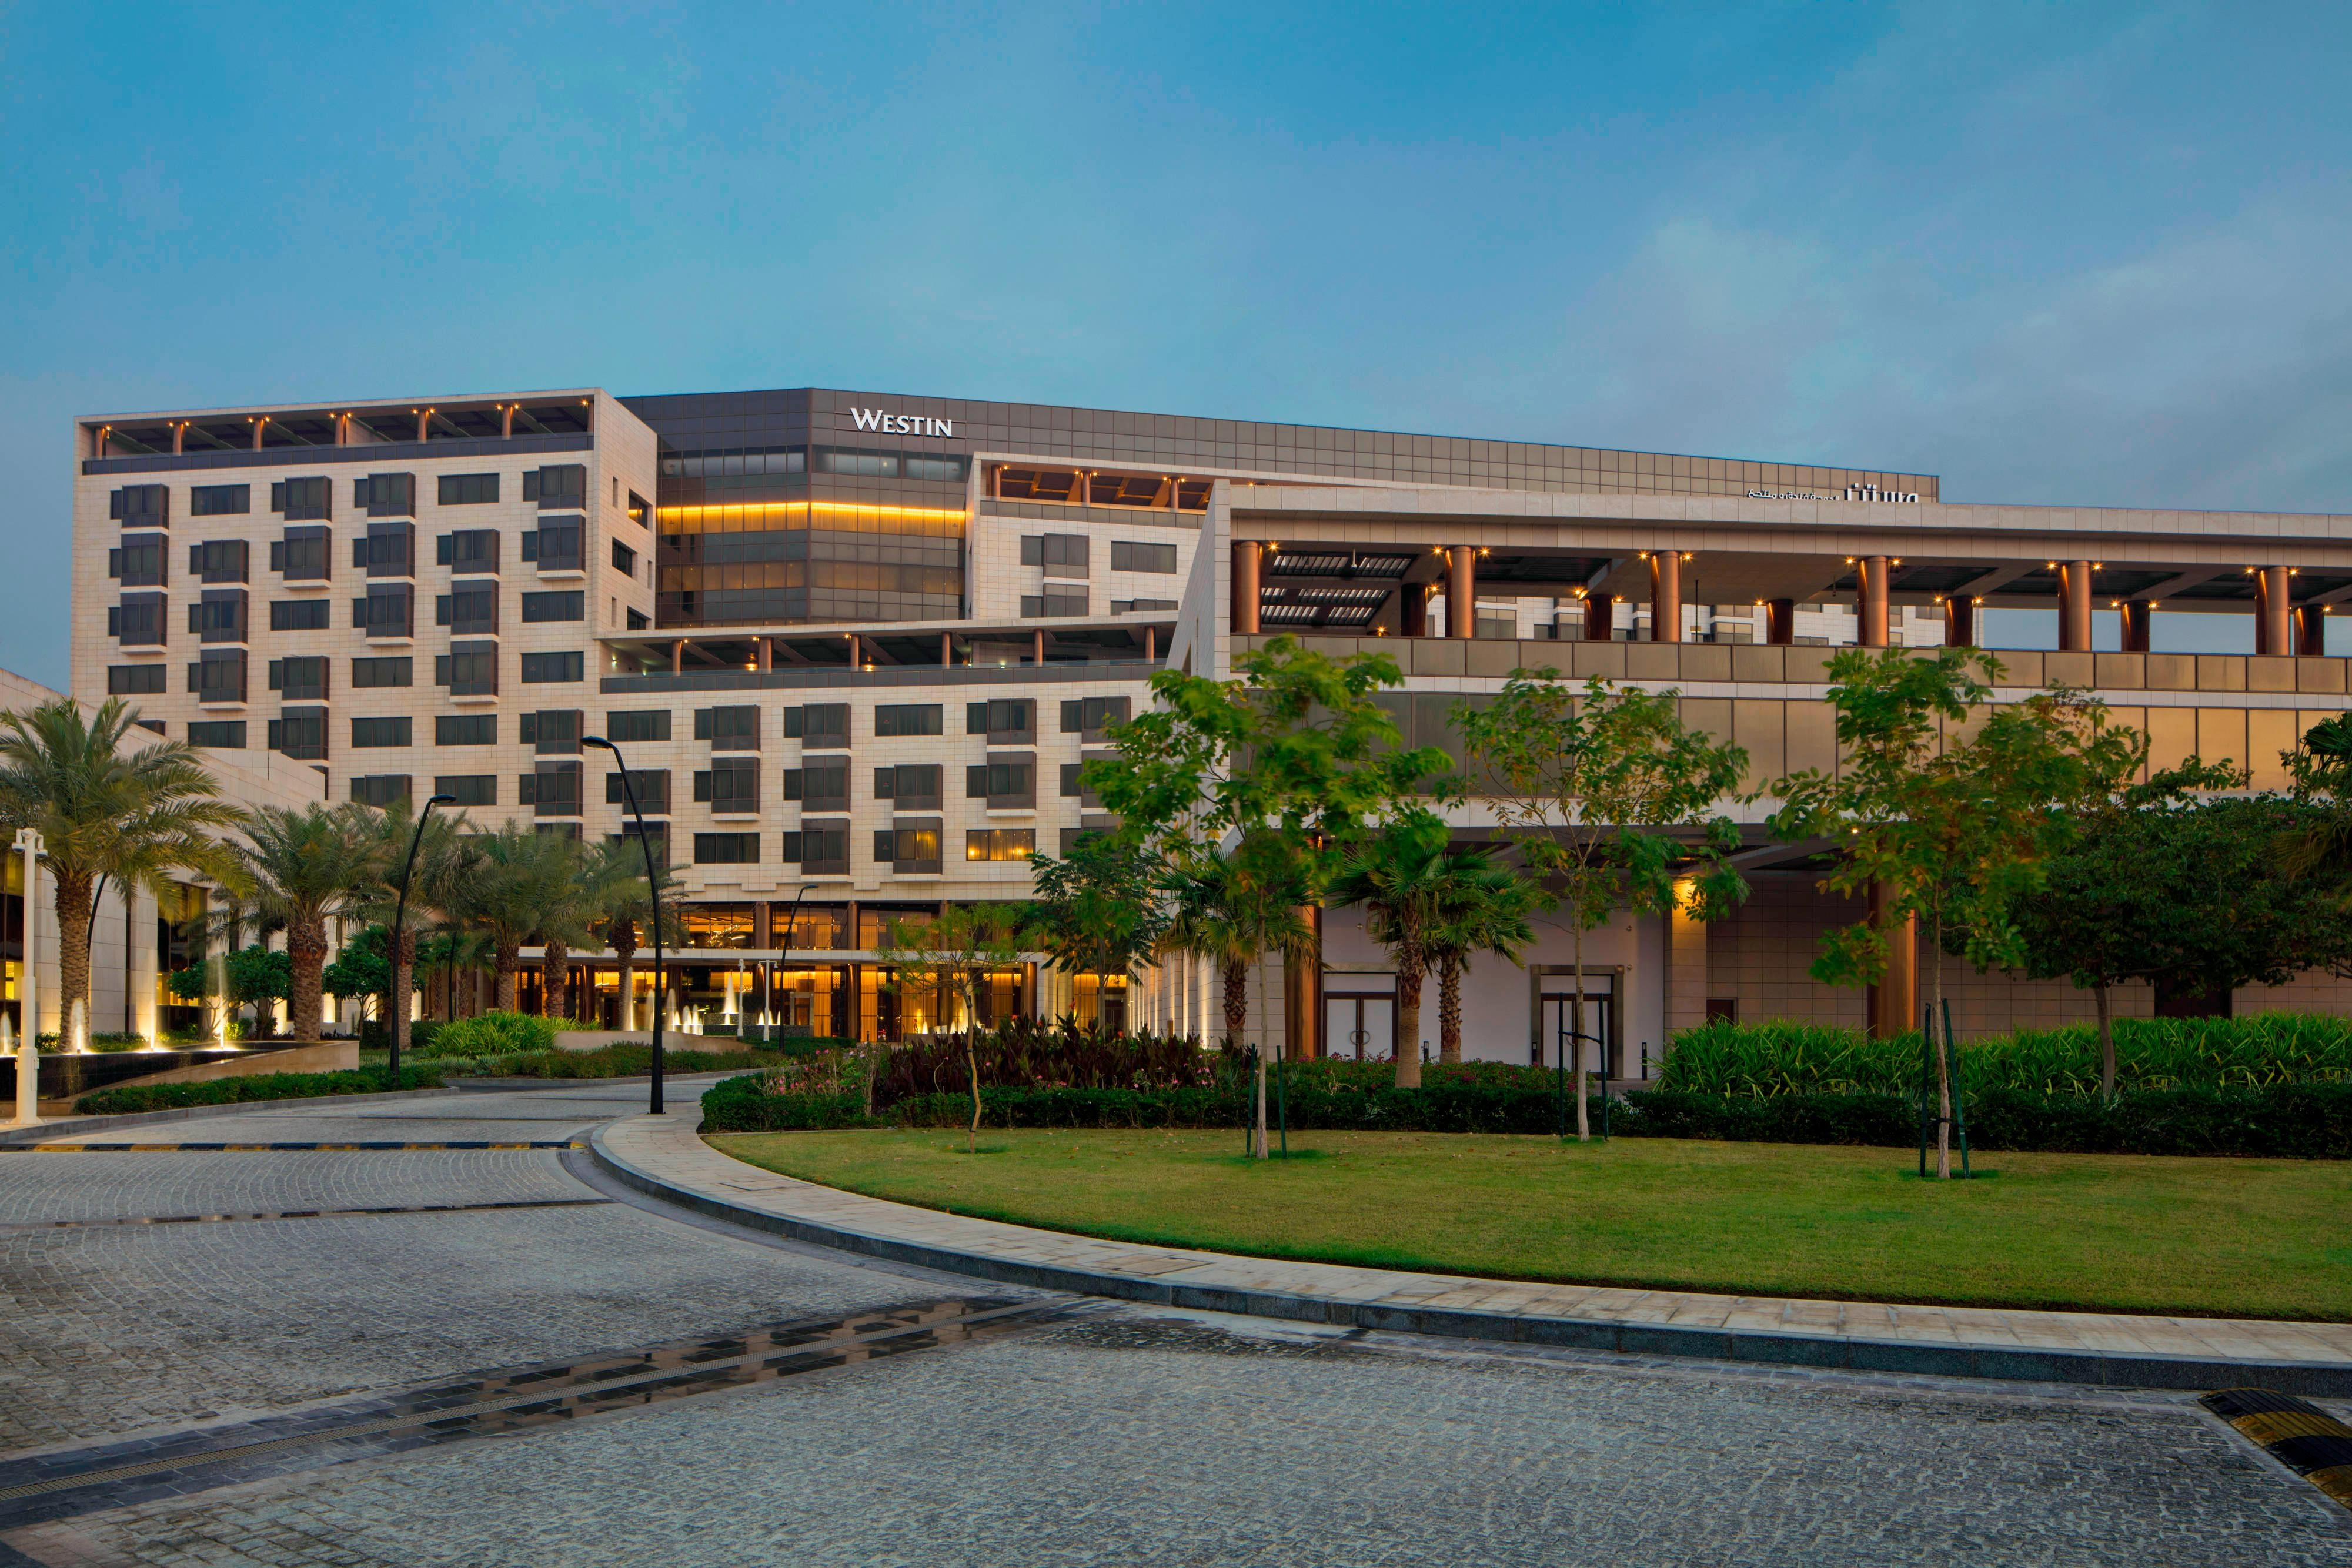 The Westin Doha Hotel & Spa is an oasis of serenity in the heart of a rapidly growing metropolis. From elaborate entrances, bold walkways, lavish villas, to the meandering lazy river, the juxtaposition of serenity within the electric urban pull of Doha is a concept never seen before in the country.